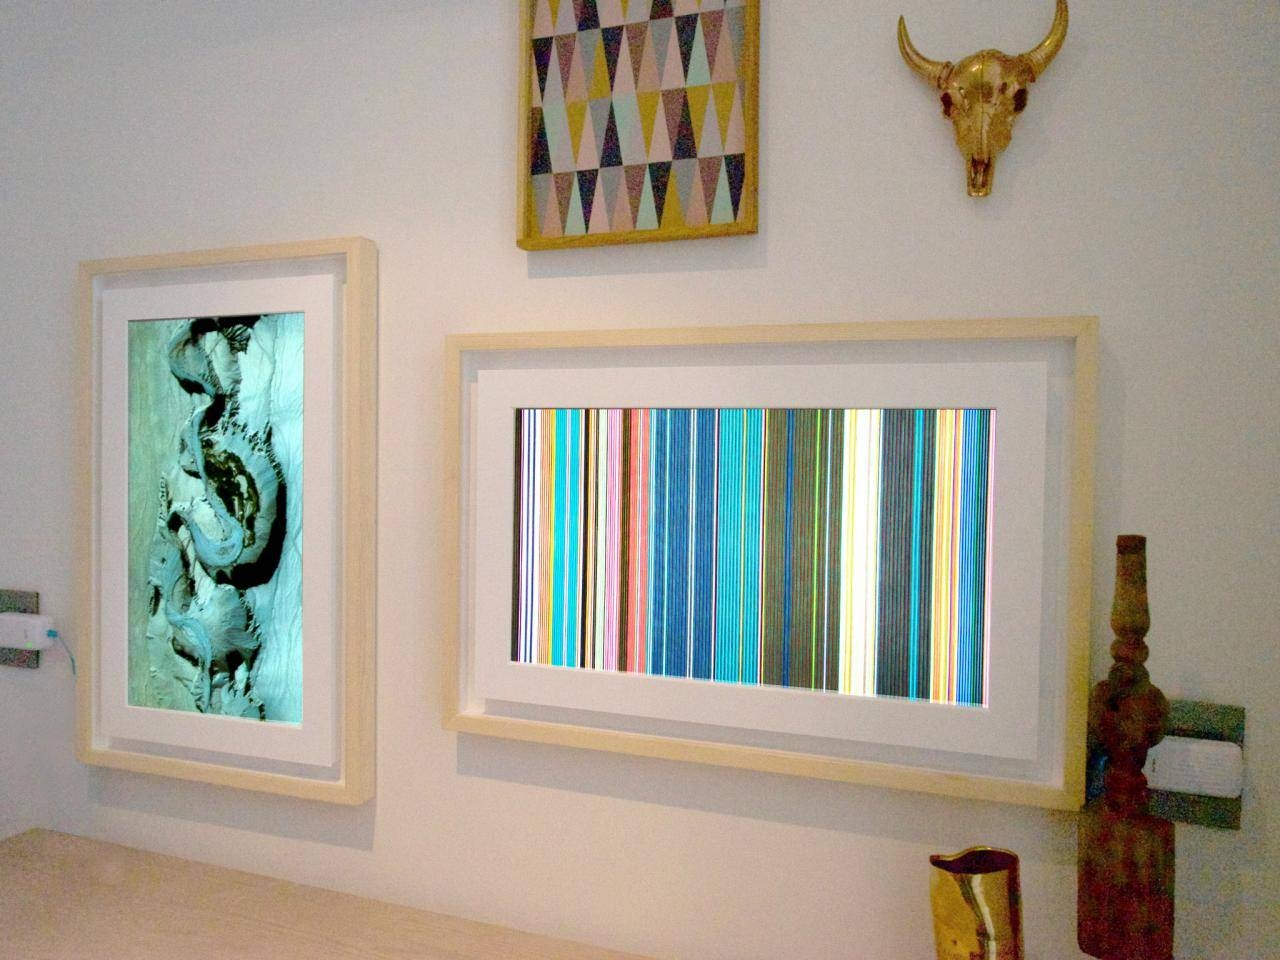 Digital Picture Frames Have Grown Up Into Wall Art | Hgtv Smart With Newest Wall Art Frames (View 7 of 20)